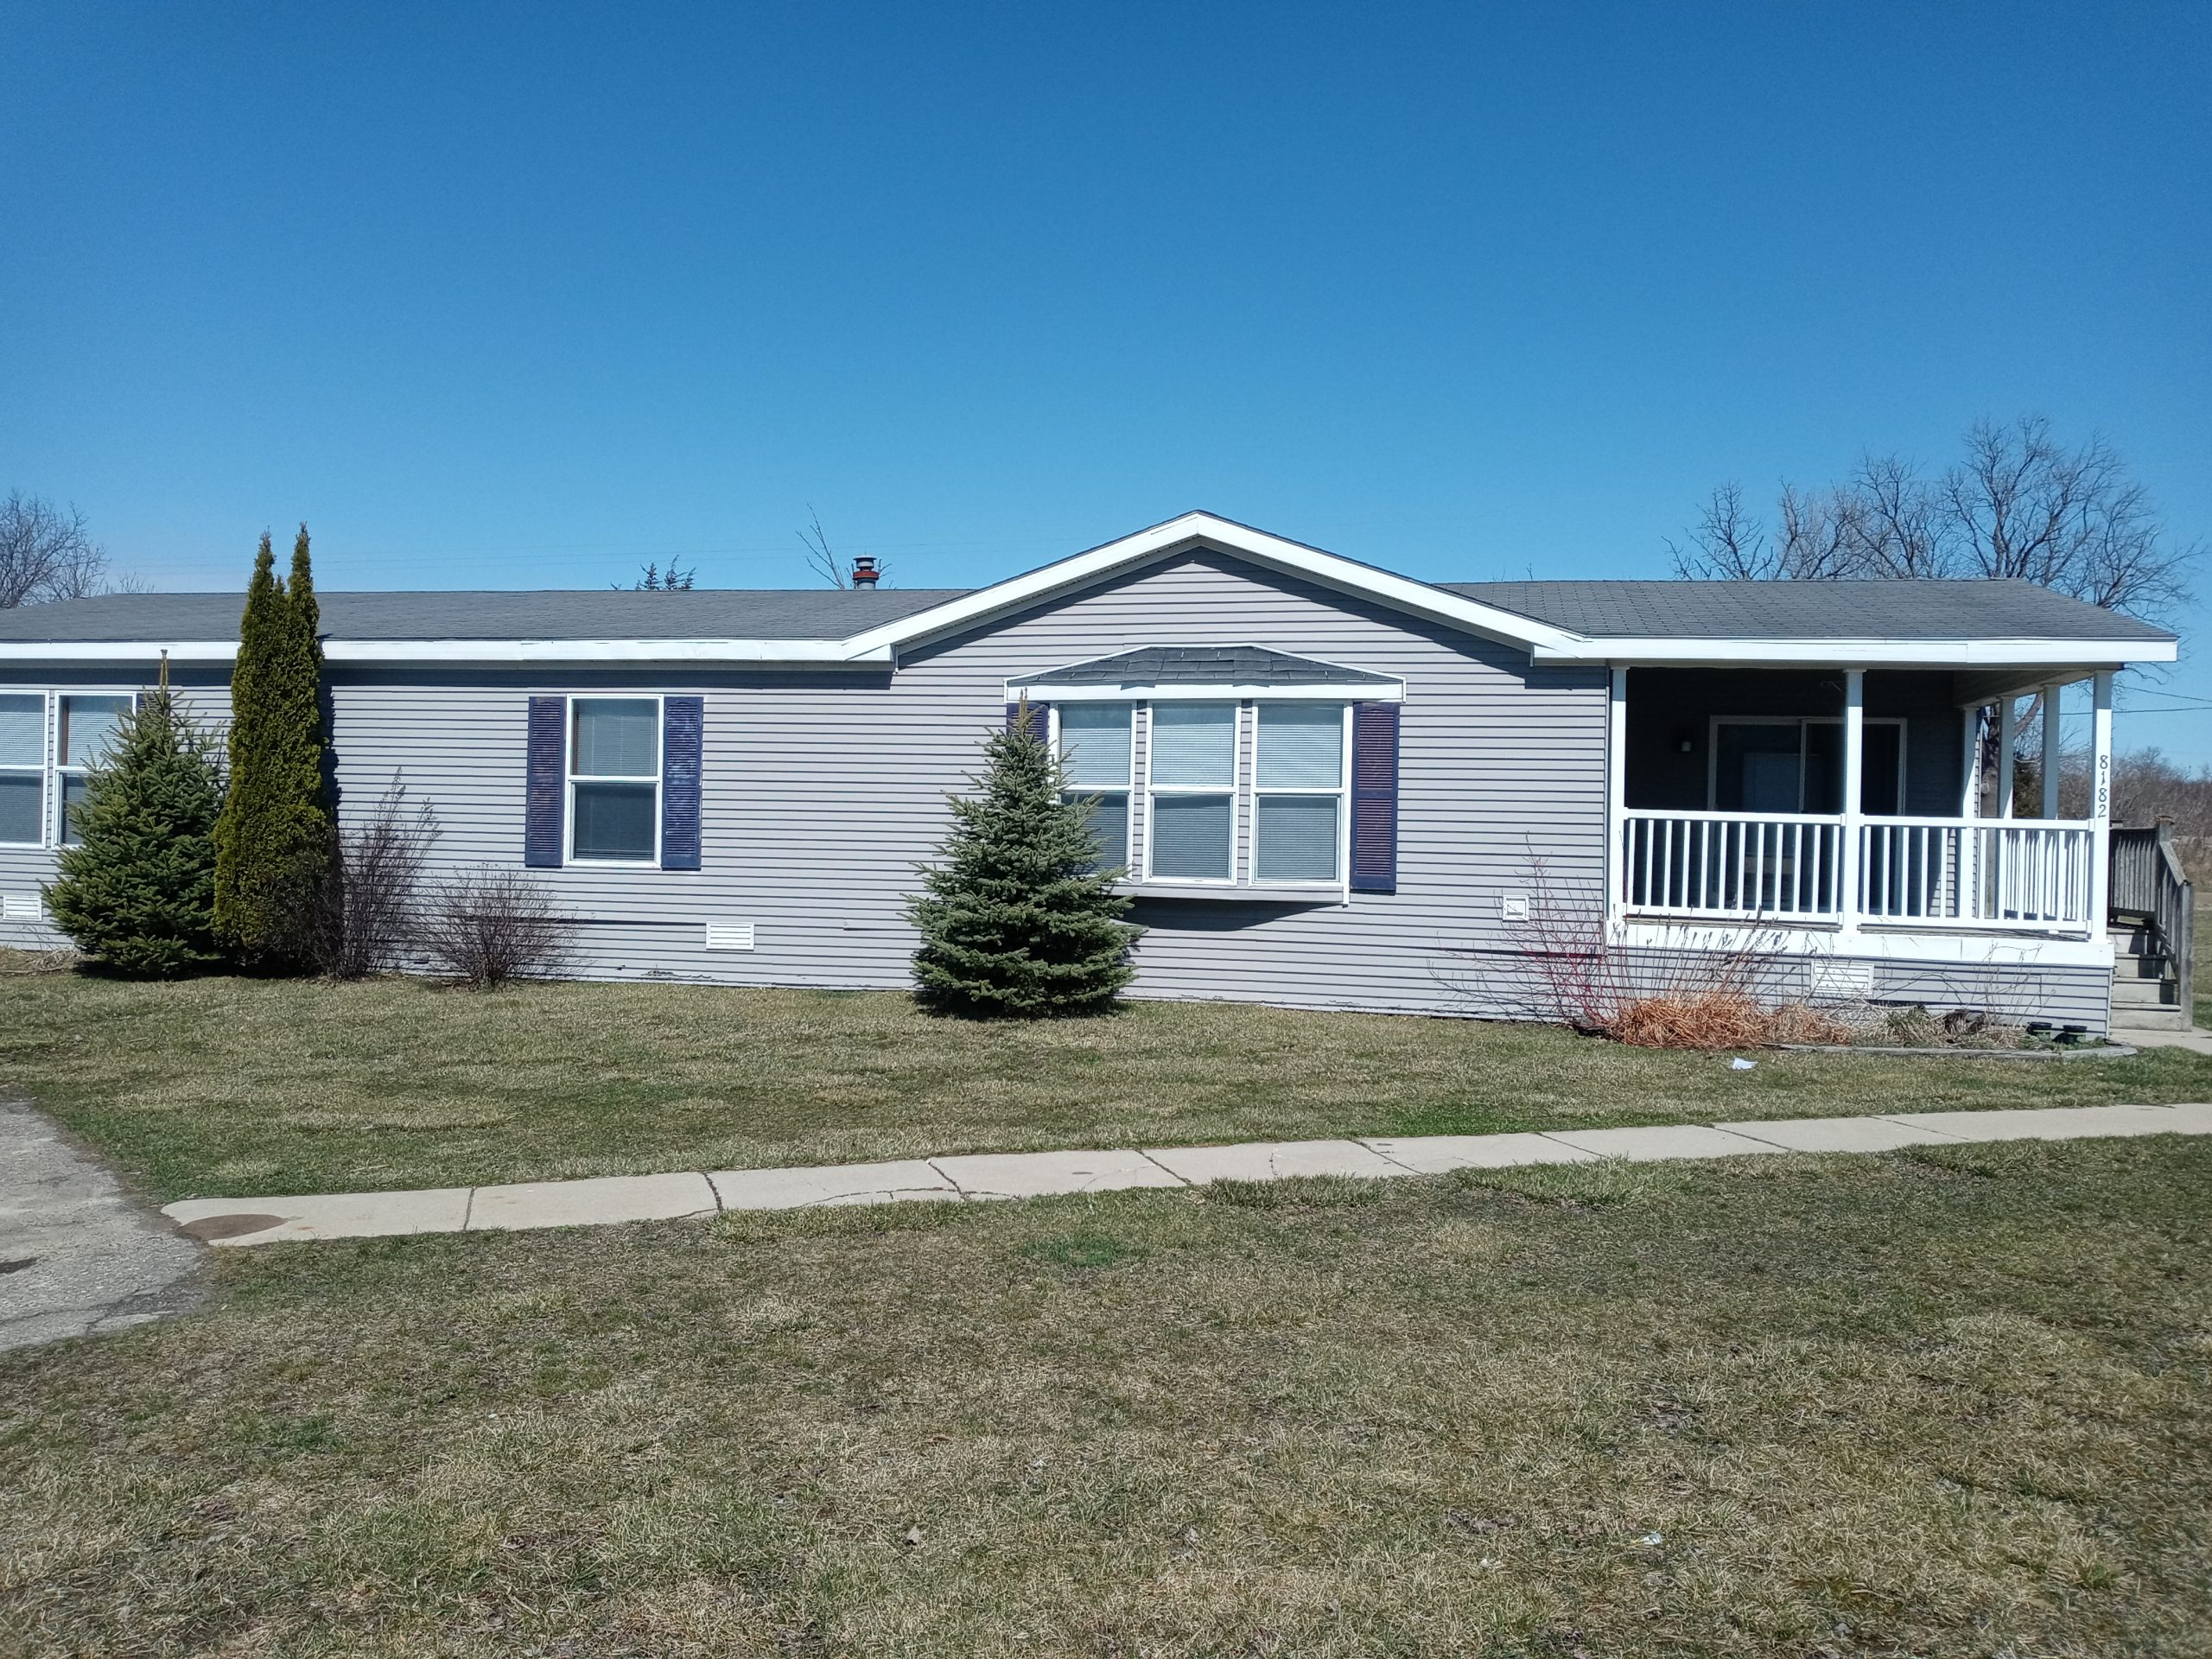 Things to Consider When Buying a Mobile Home